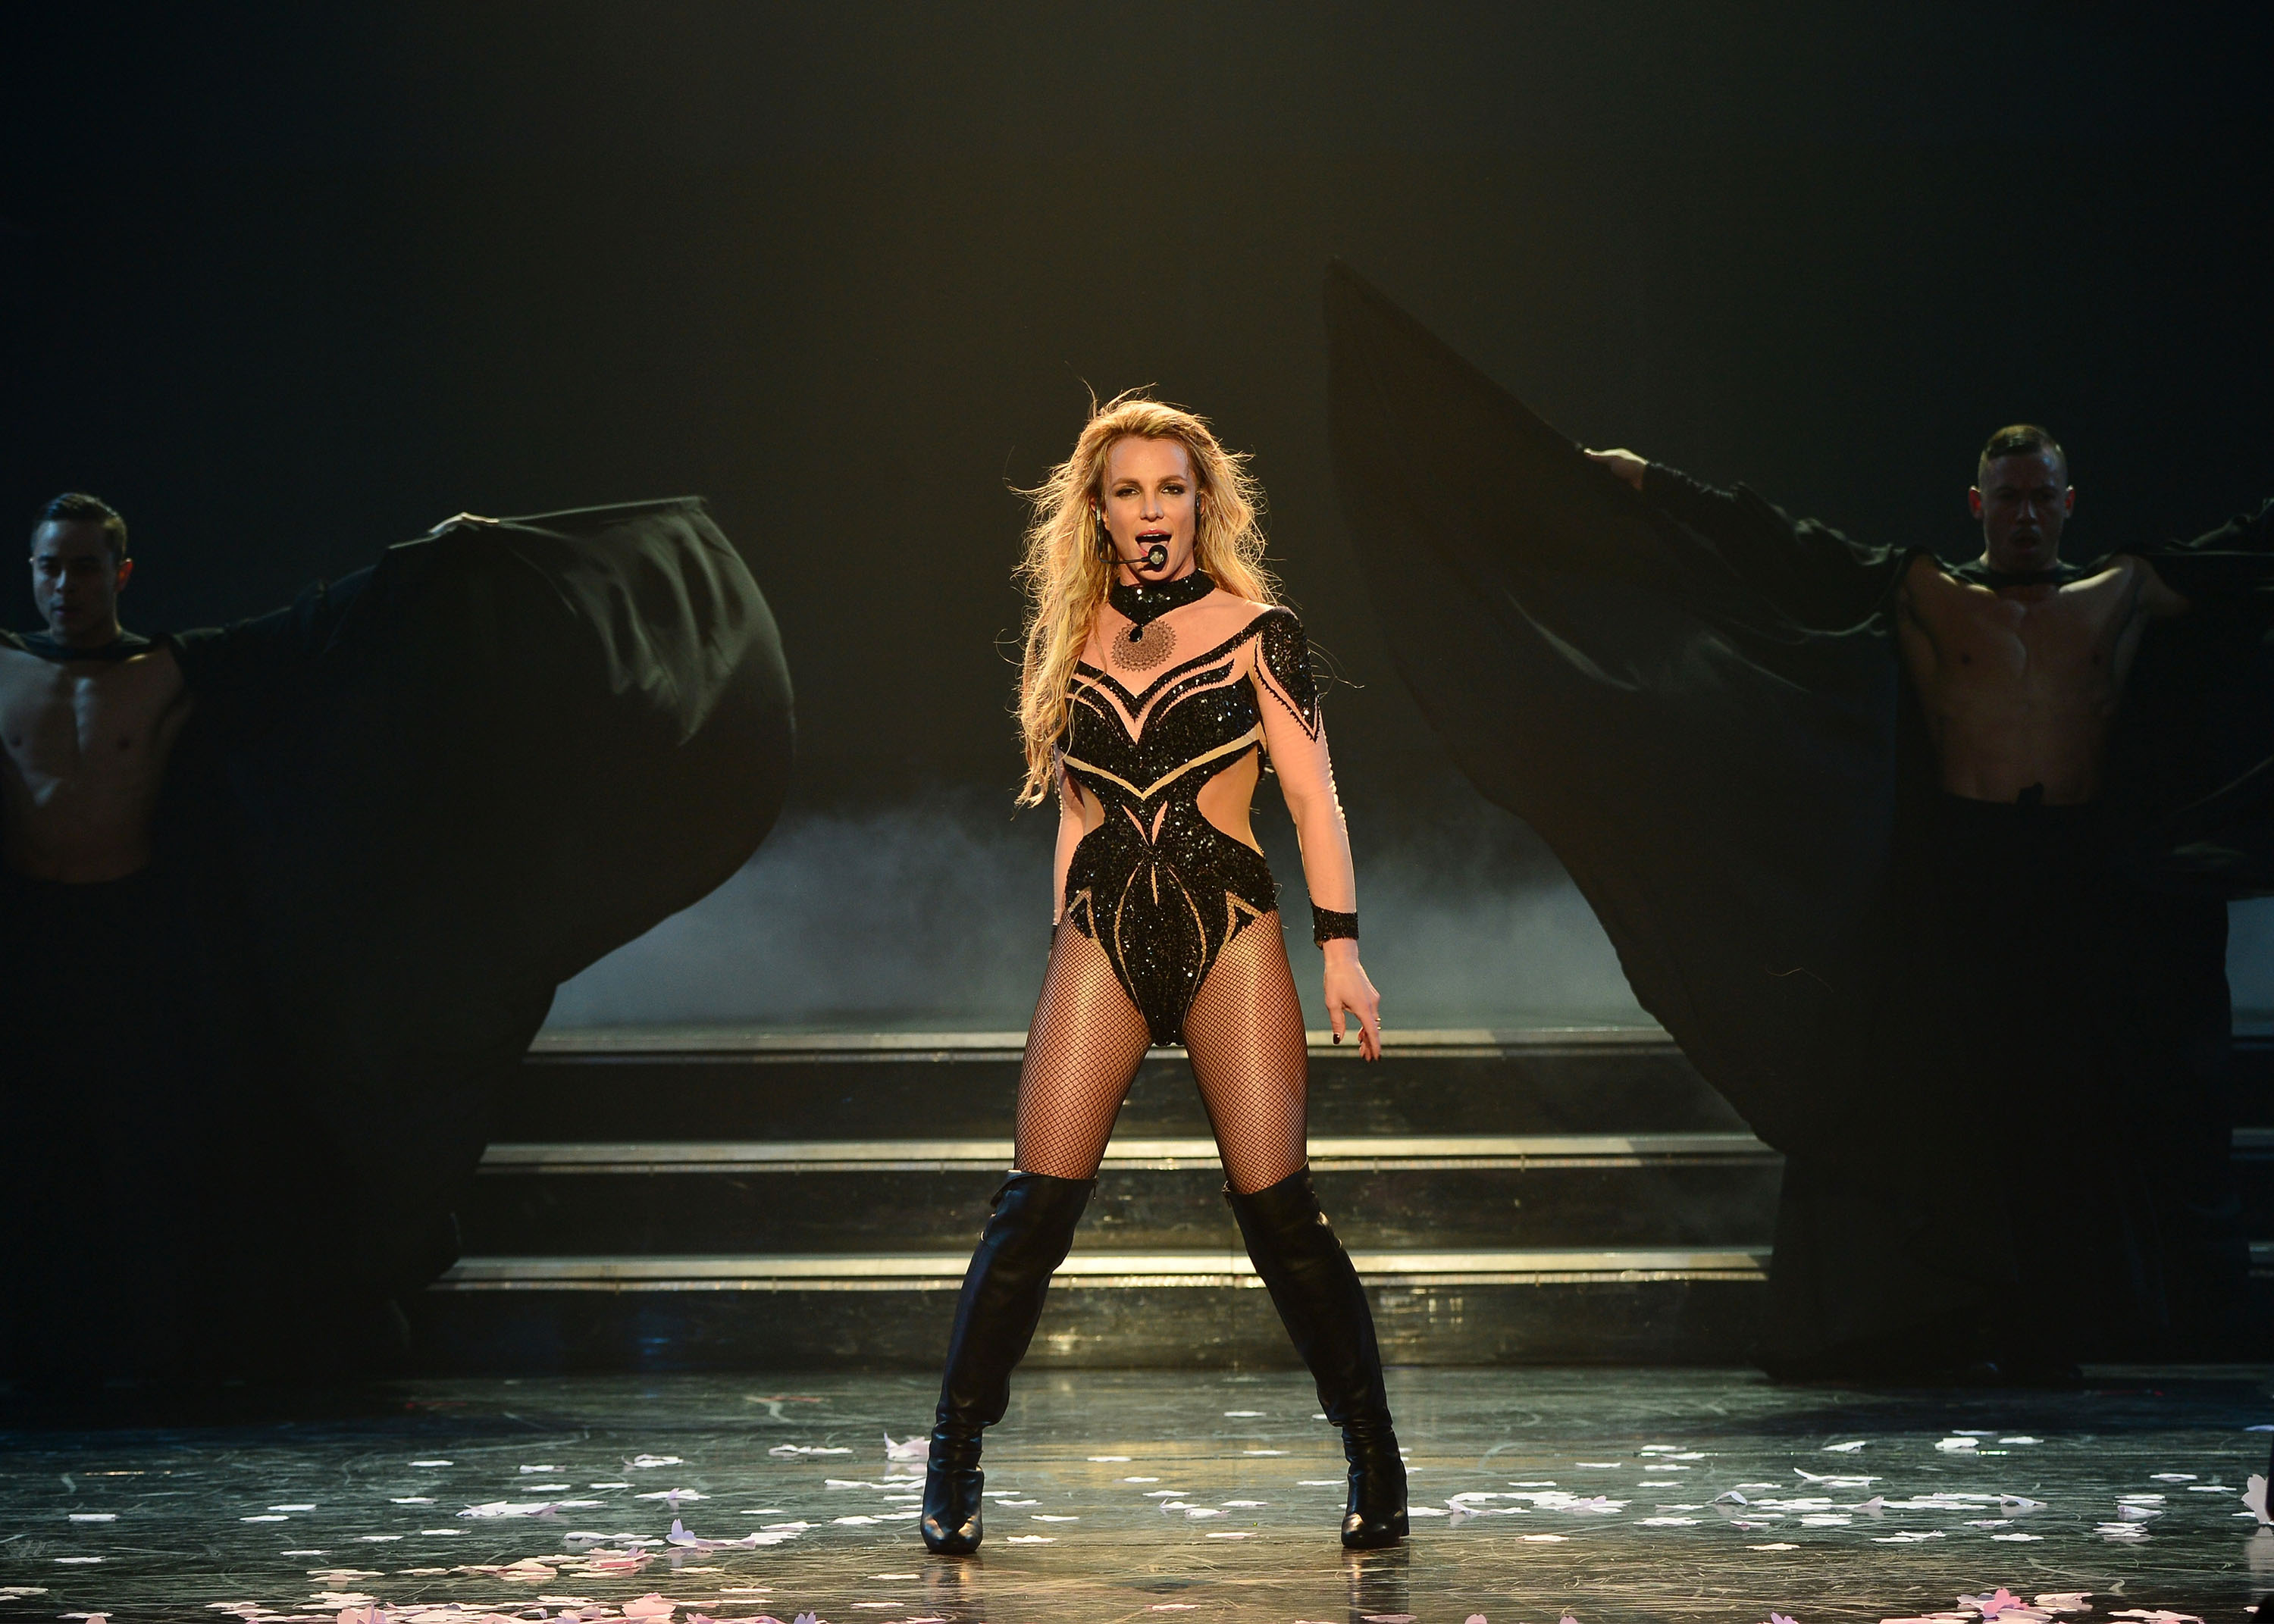 Britney Spears performs Britney Spears: Piece of Me Remixed. Reimagined. Still iconic. At Planet Hollywood Resort & Casino on February 26, 2016 in Las Vegas, Nevada.